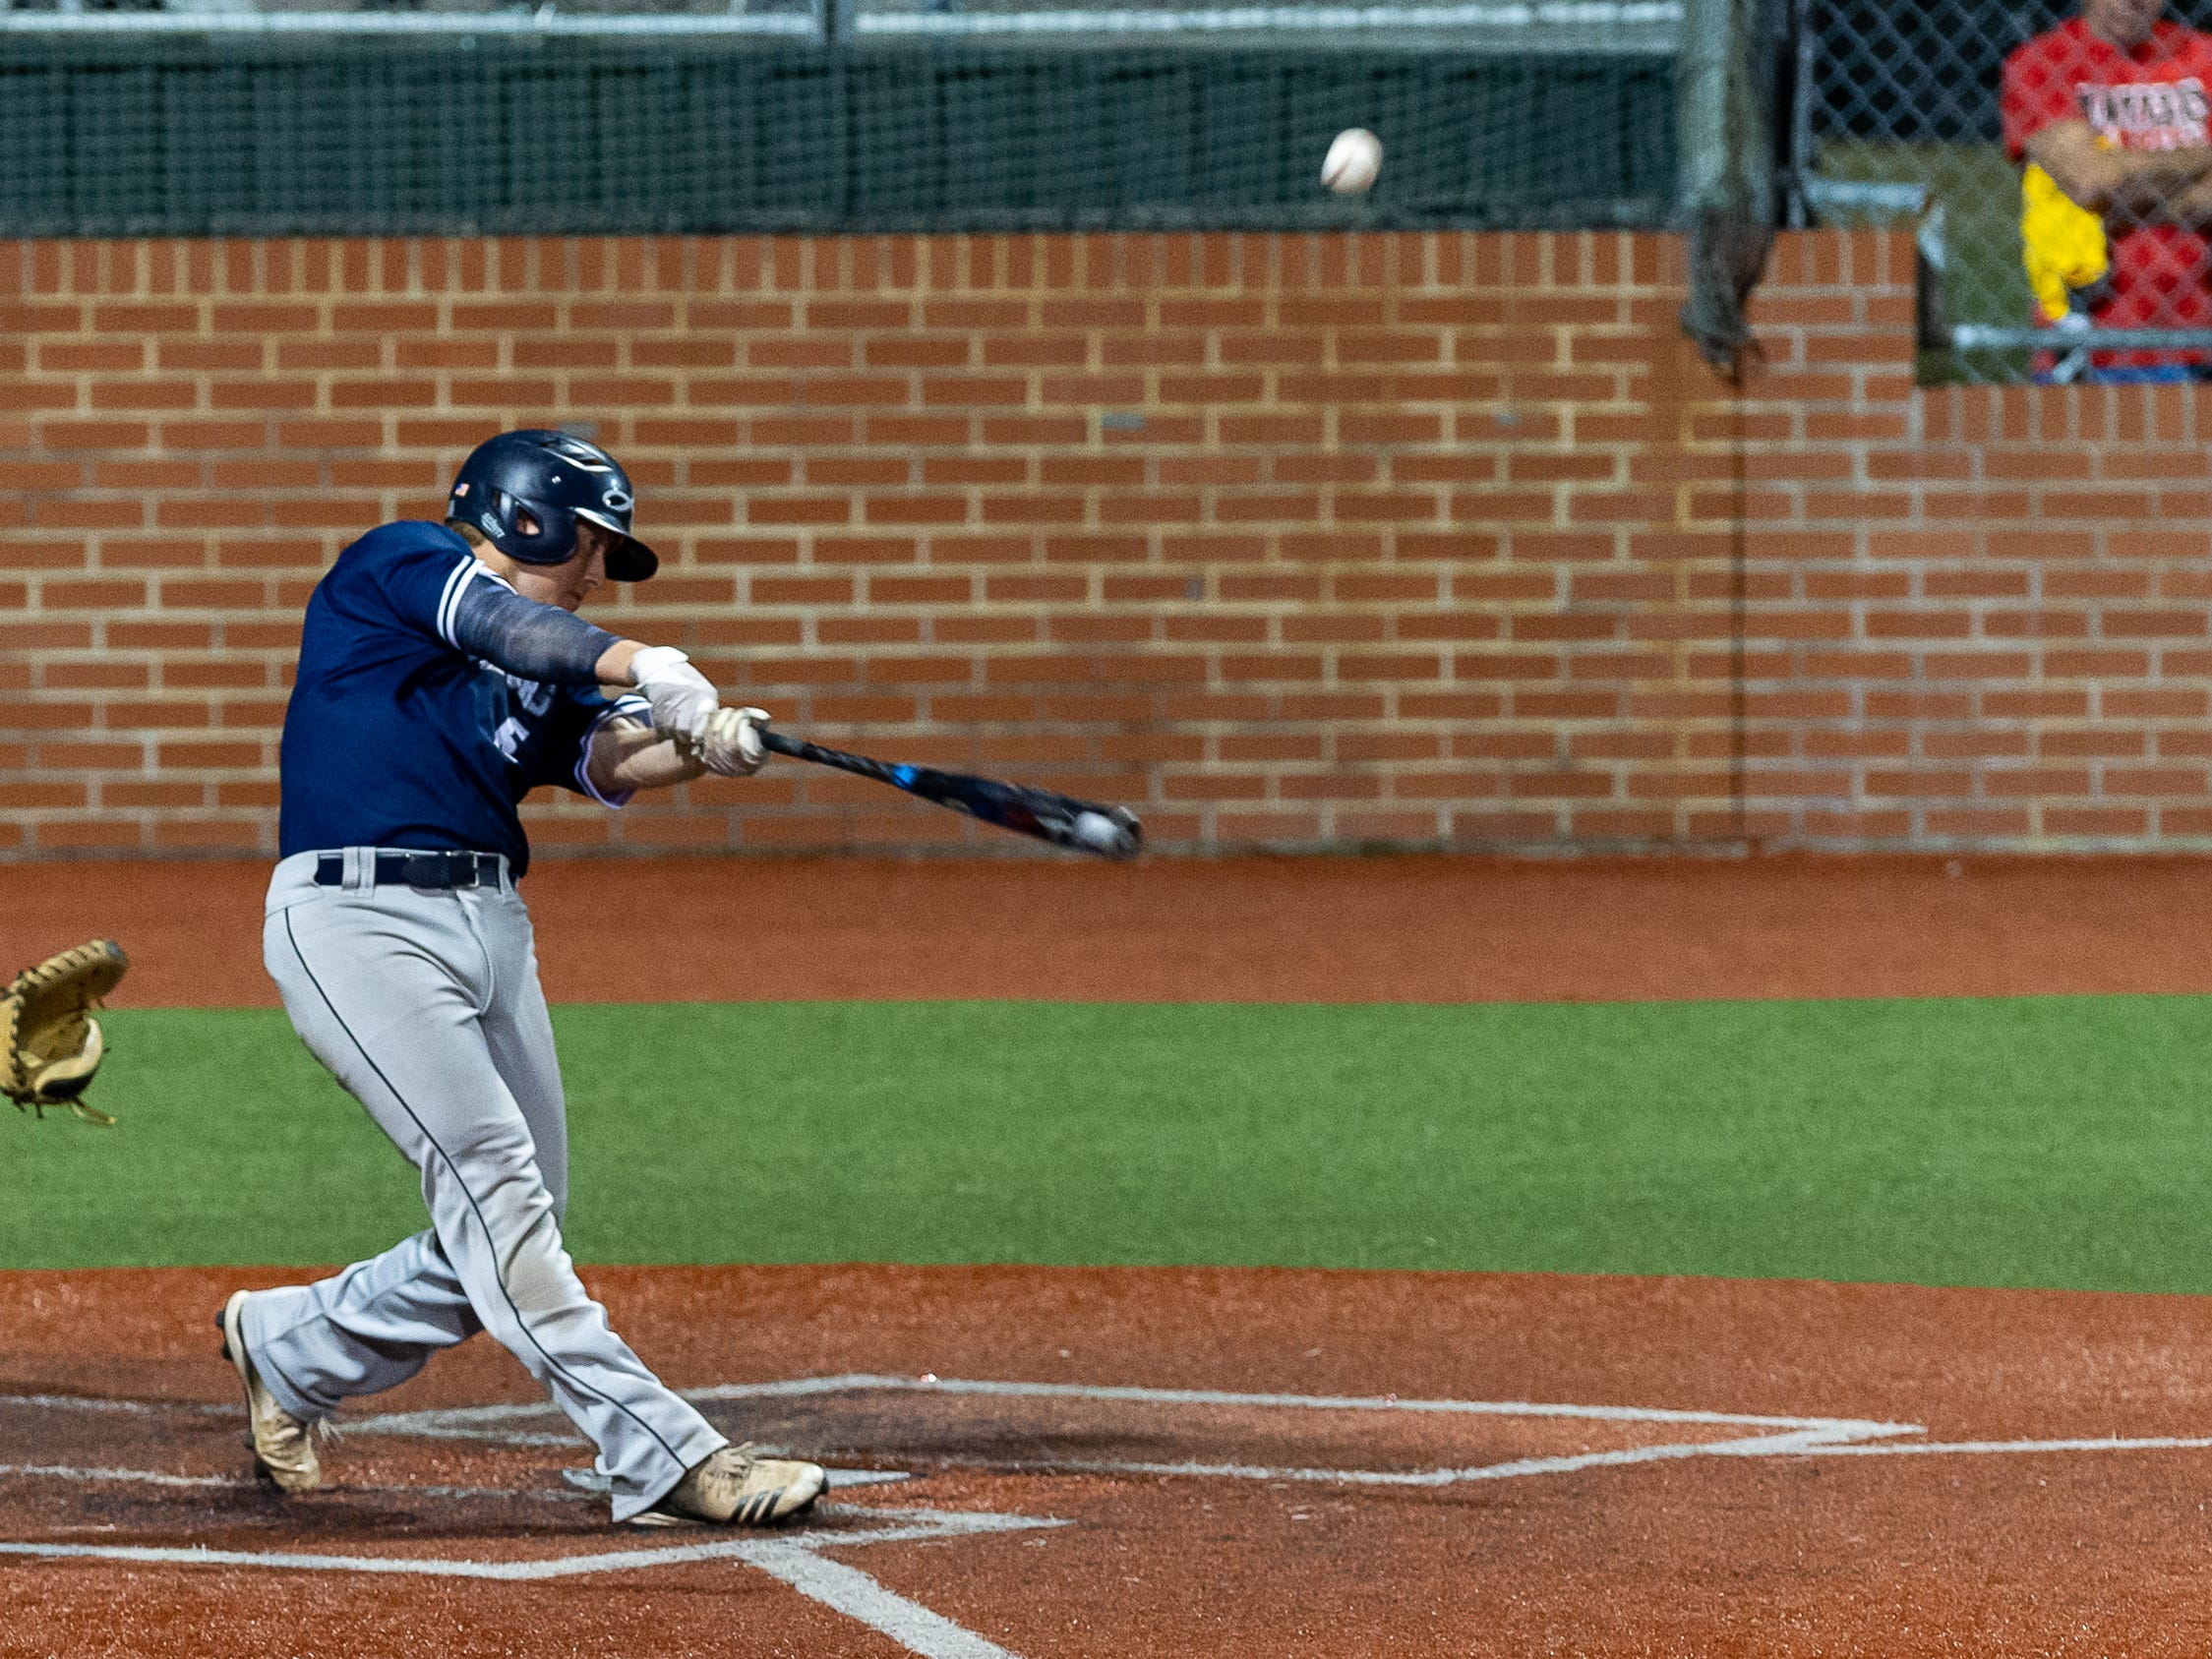 Seth Kerstetter at the plate as Ascension Episcopal takes on St. Thomas Aquinas in the semi final round at the LHSAA State Championship. Wednesday, May 8, 2019.